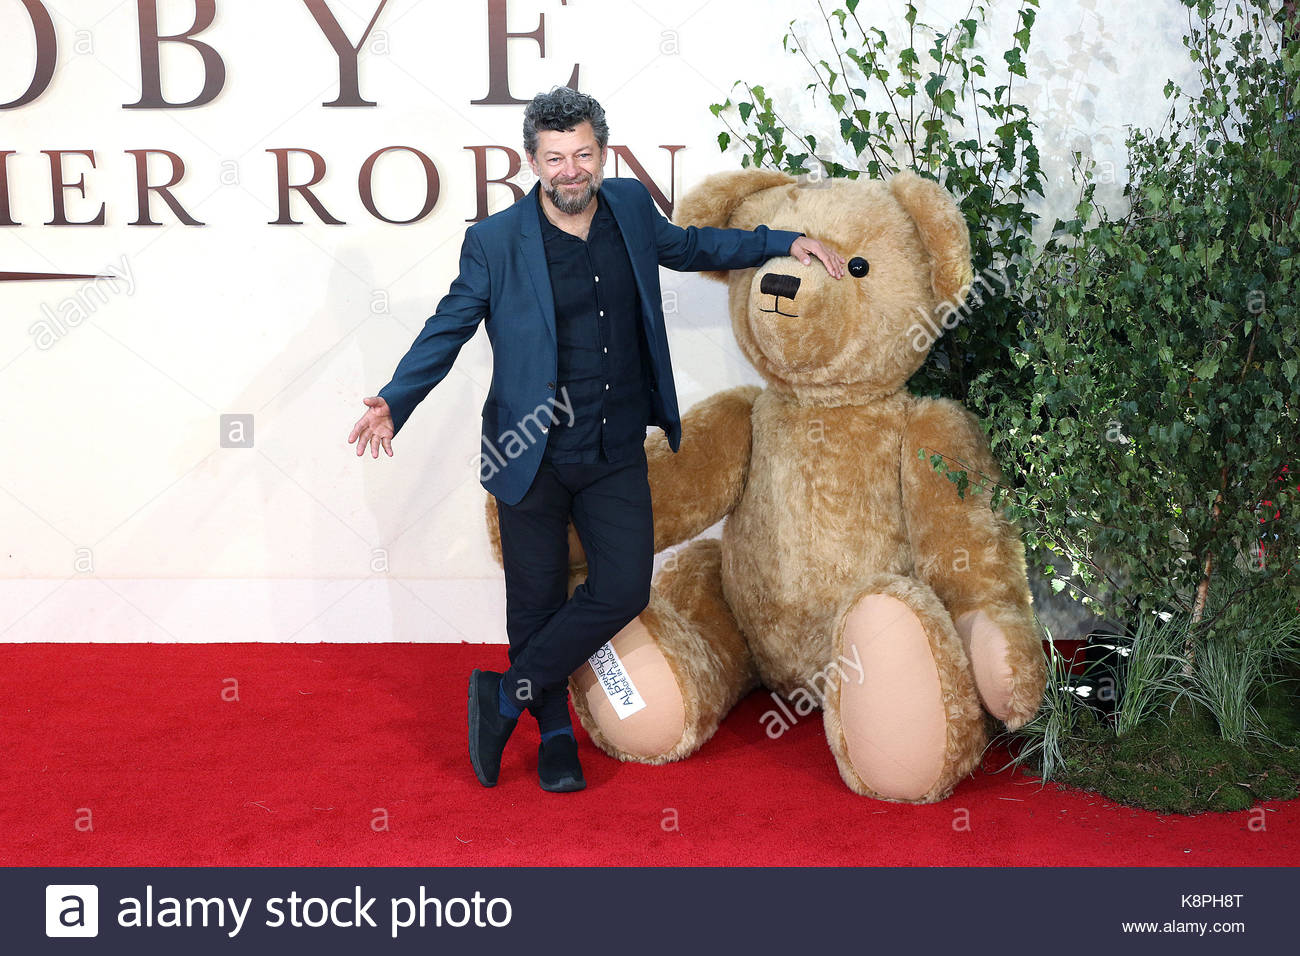 London, UK. 20th Sep, 2017. Andy Serkis attends the 'Goodbye Christopher Robin' World Premiere held at Odeon - Stock Image